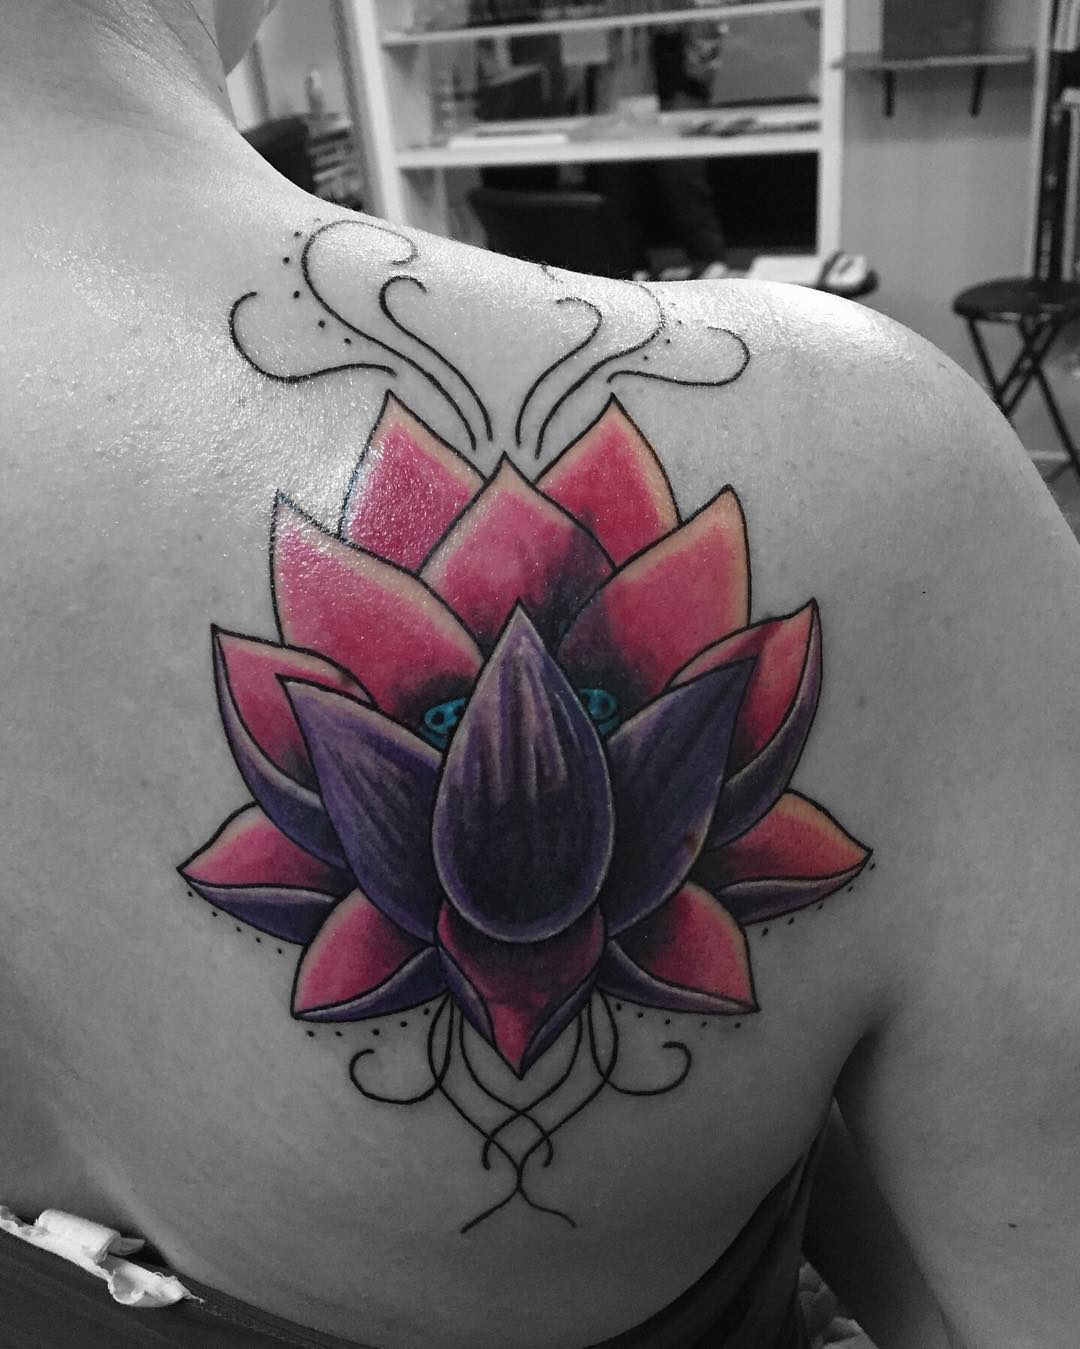 Cool Flower Tattoos: 26+ Lotus Flower Tattoo Designs, Ideas